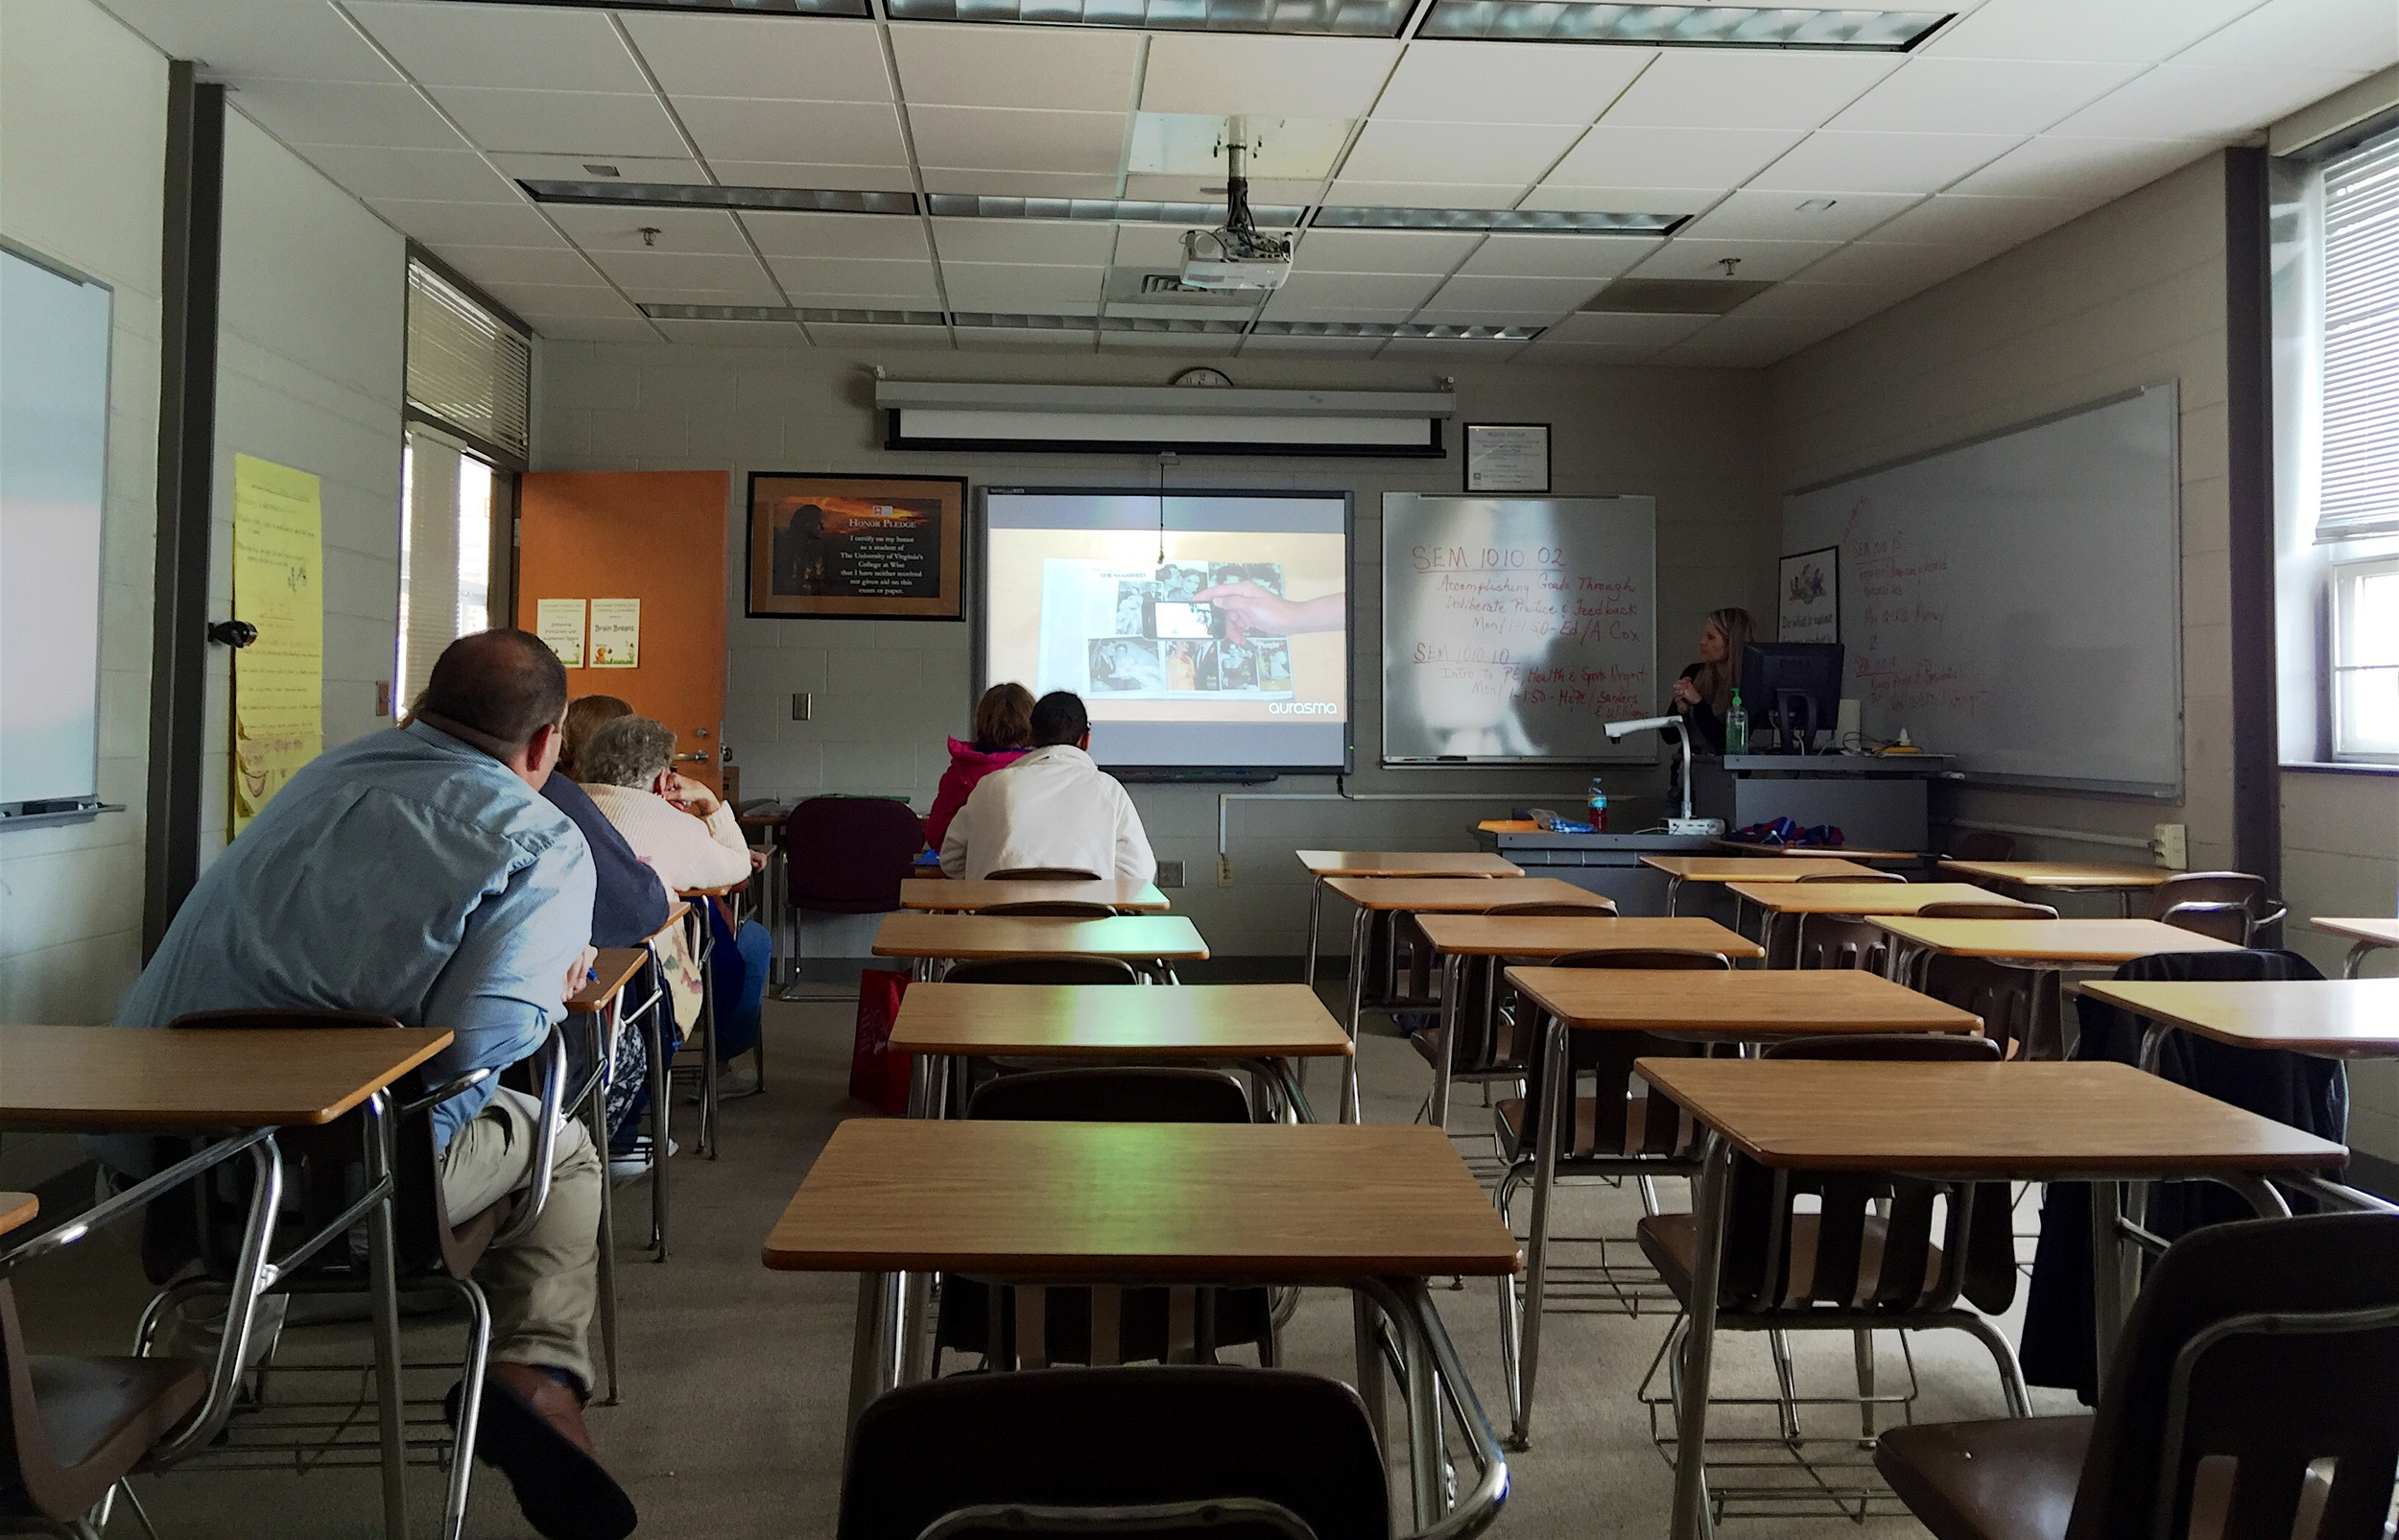 Presenting at The Southwest Virginia Early Childhood Conference on Augmented Reality.